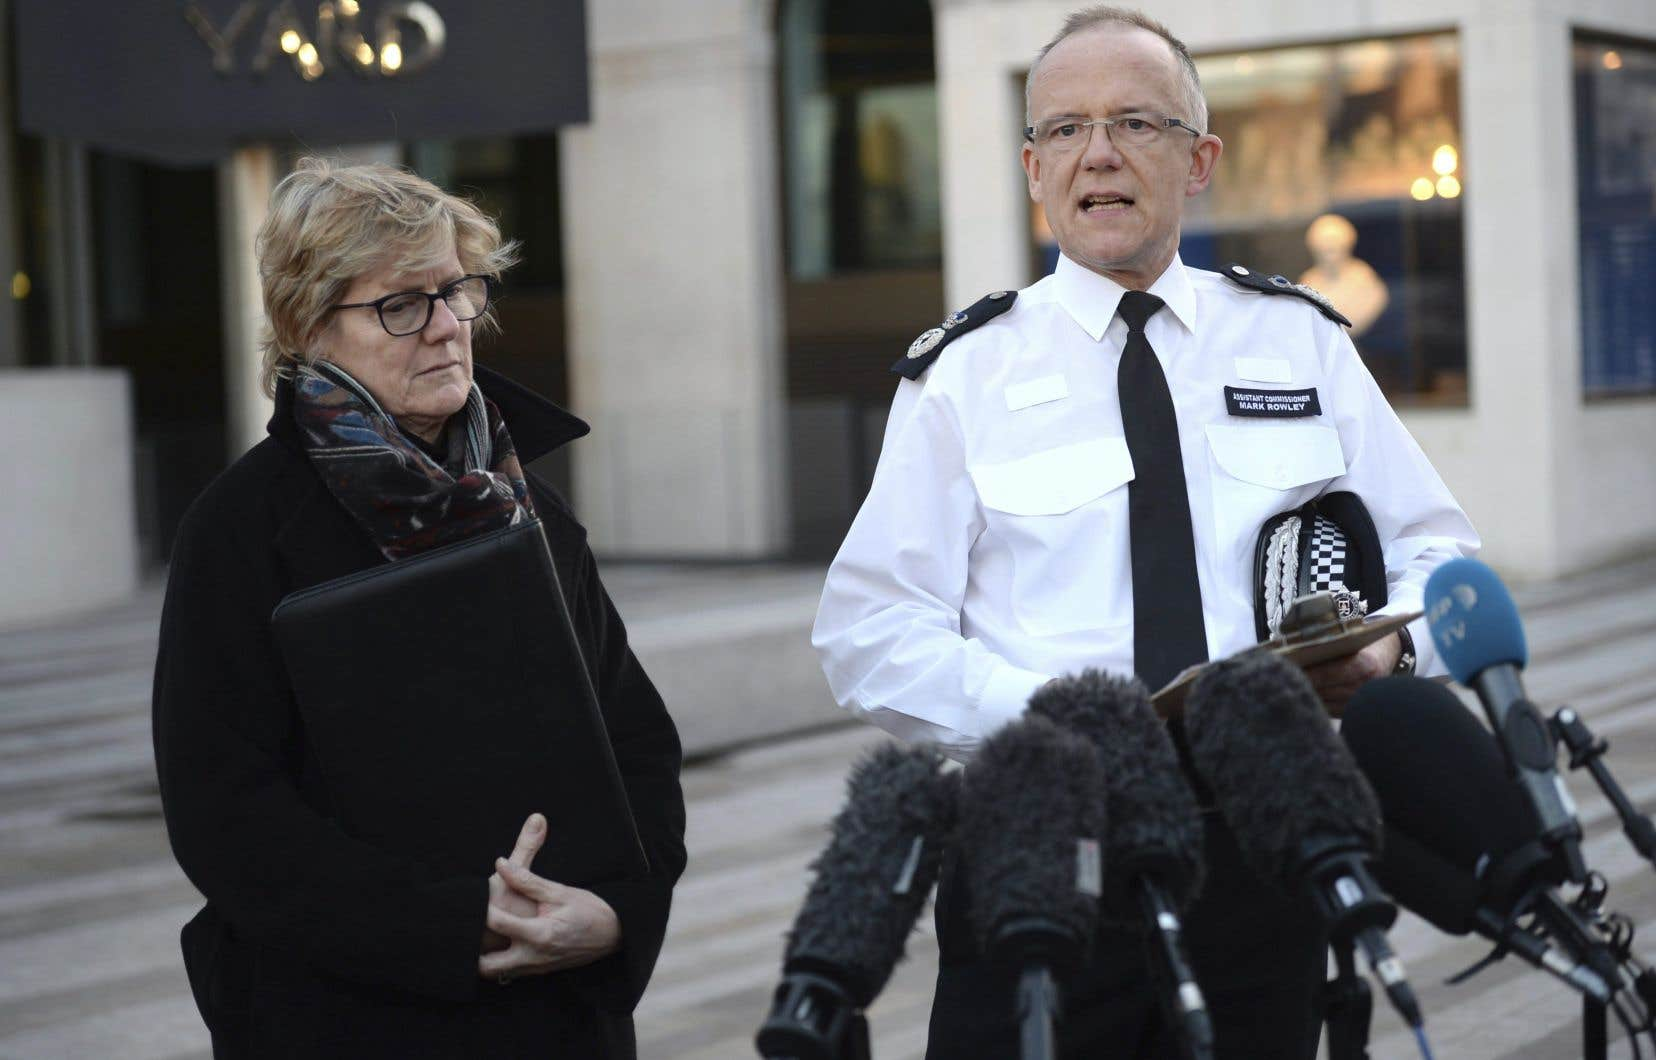 Point de presse du chef de la police antiterroriste Mark Rowley, accompagné du docteur Sally Davies, devant le siège de Scotland Yard à Londres